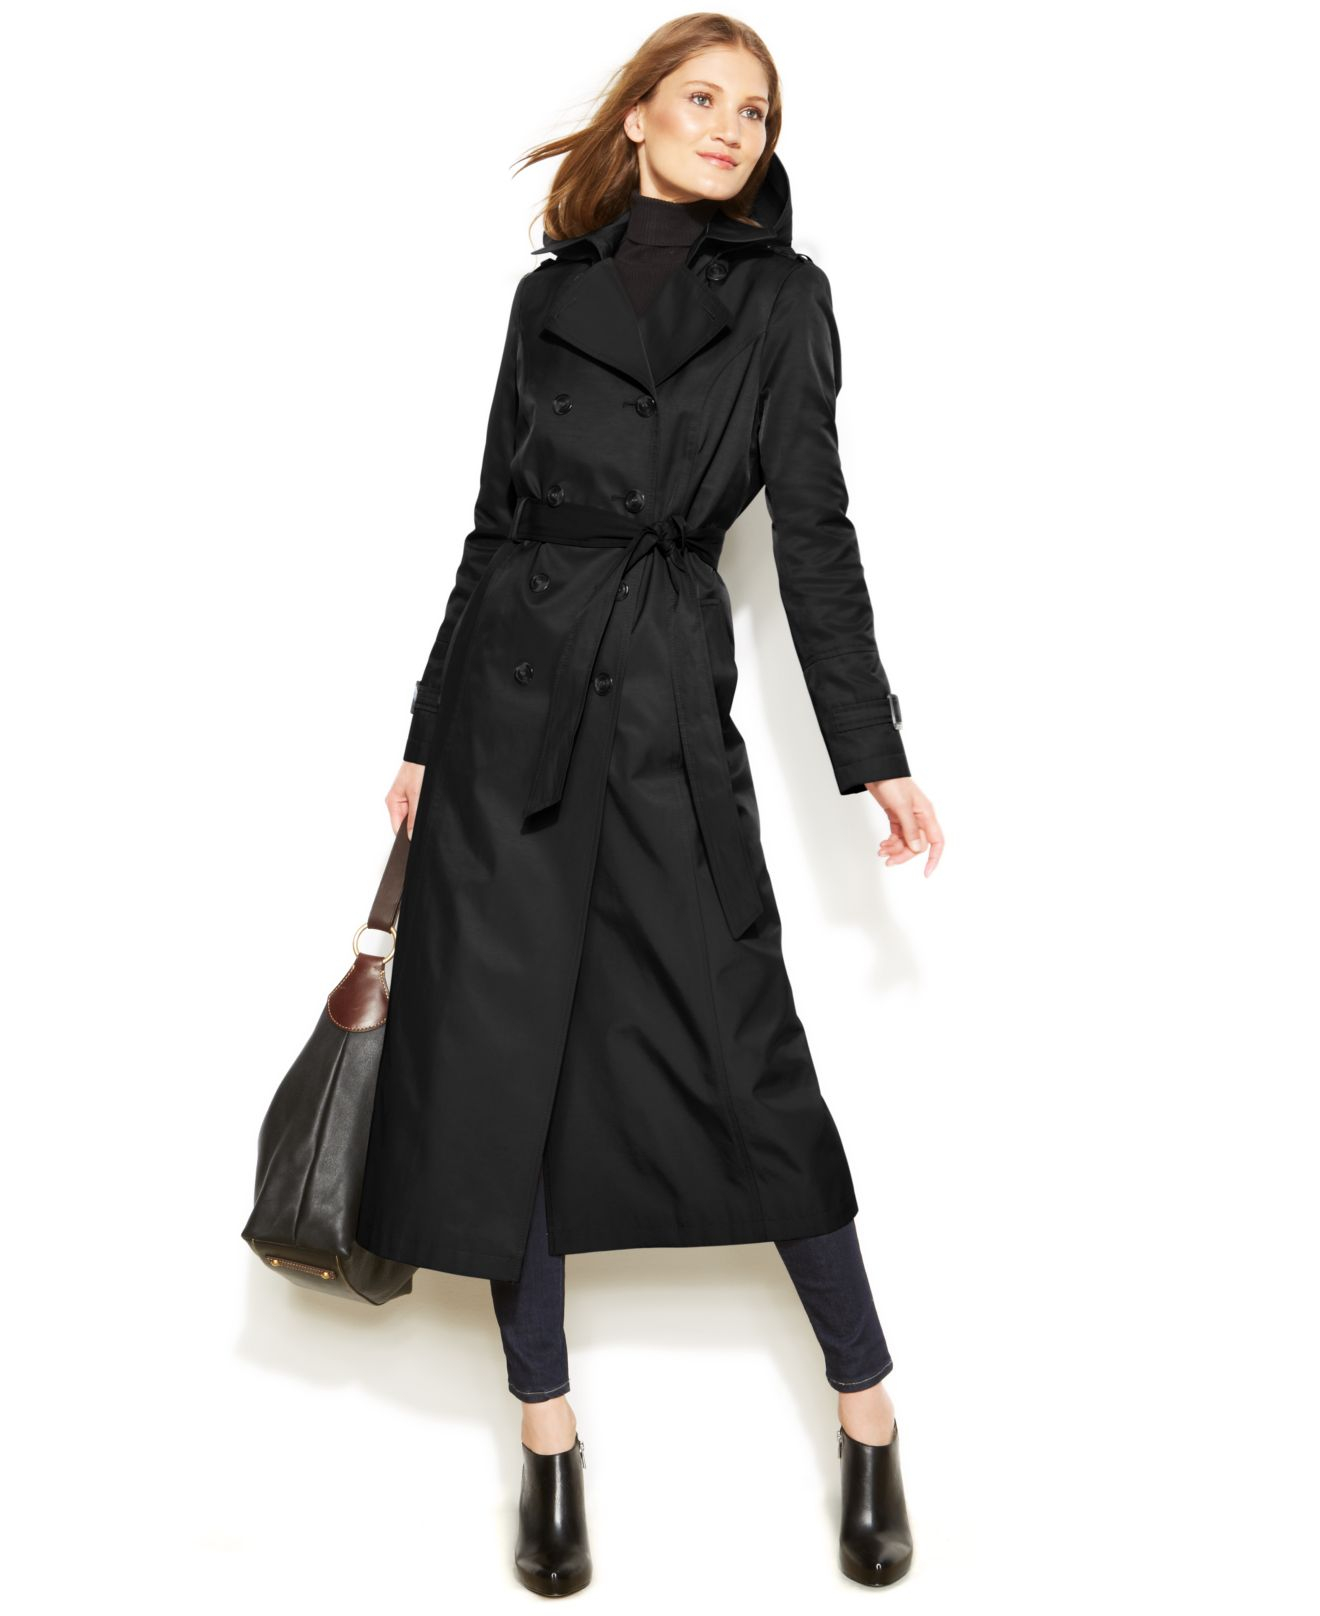 Dkny Petite Hooded Double-Breasted Maxi Trench Coat in Black | Lyst